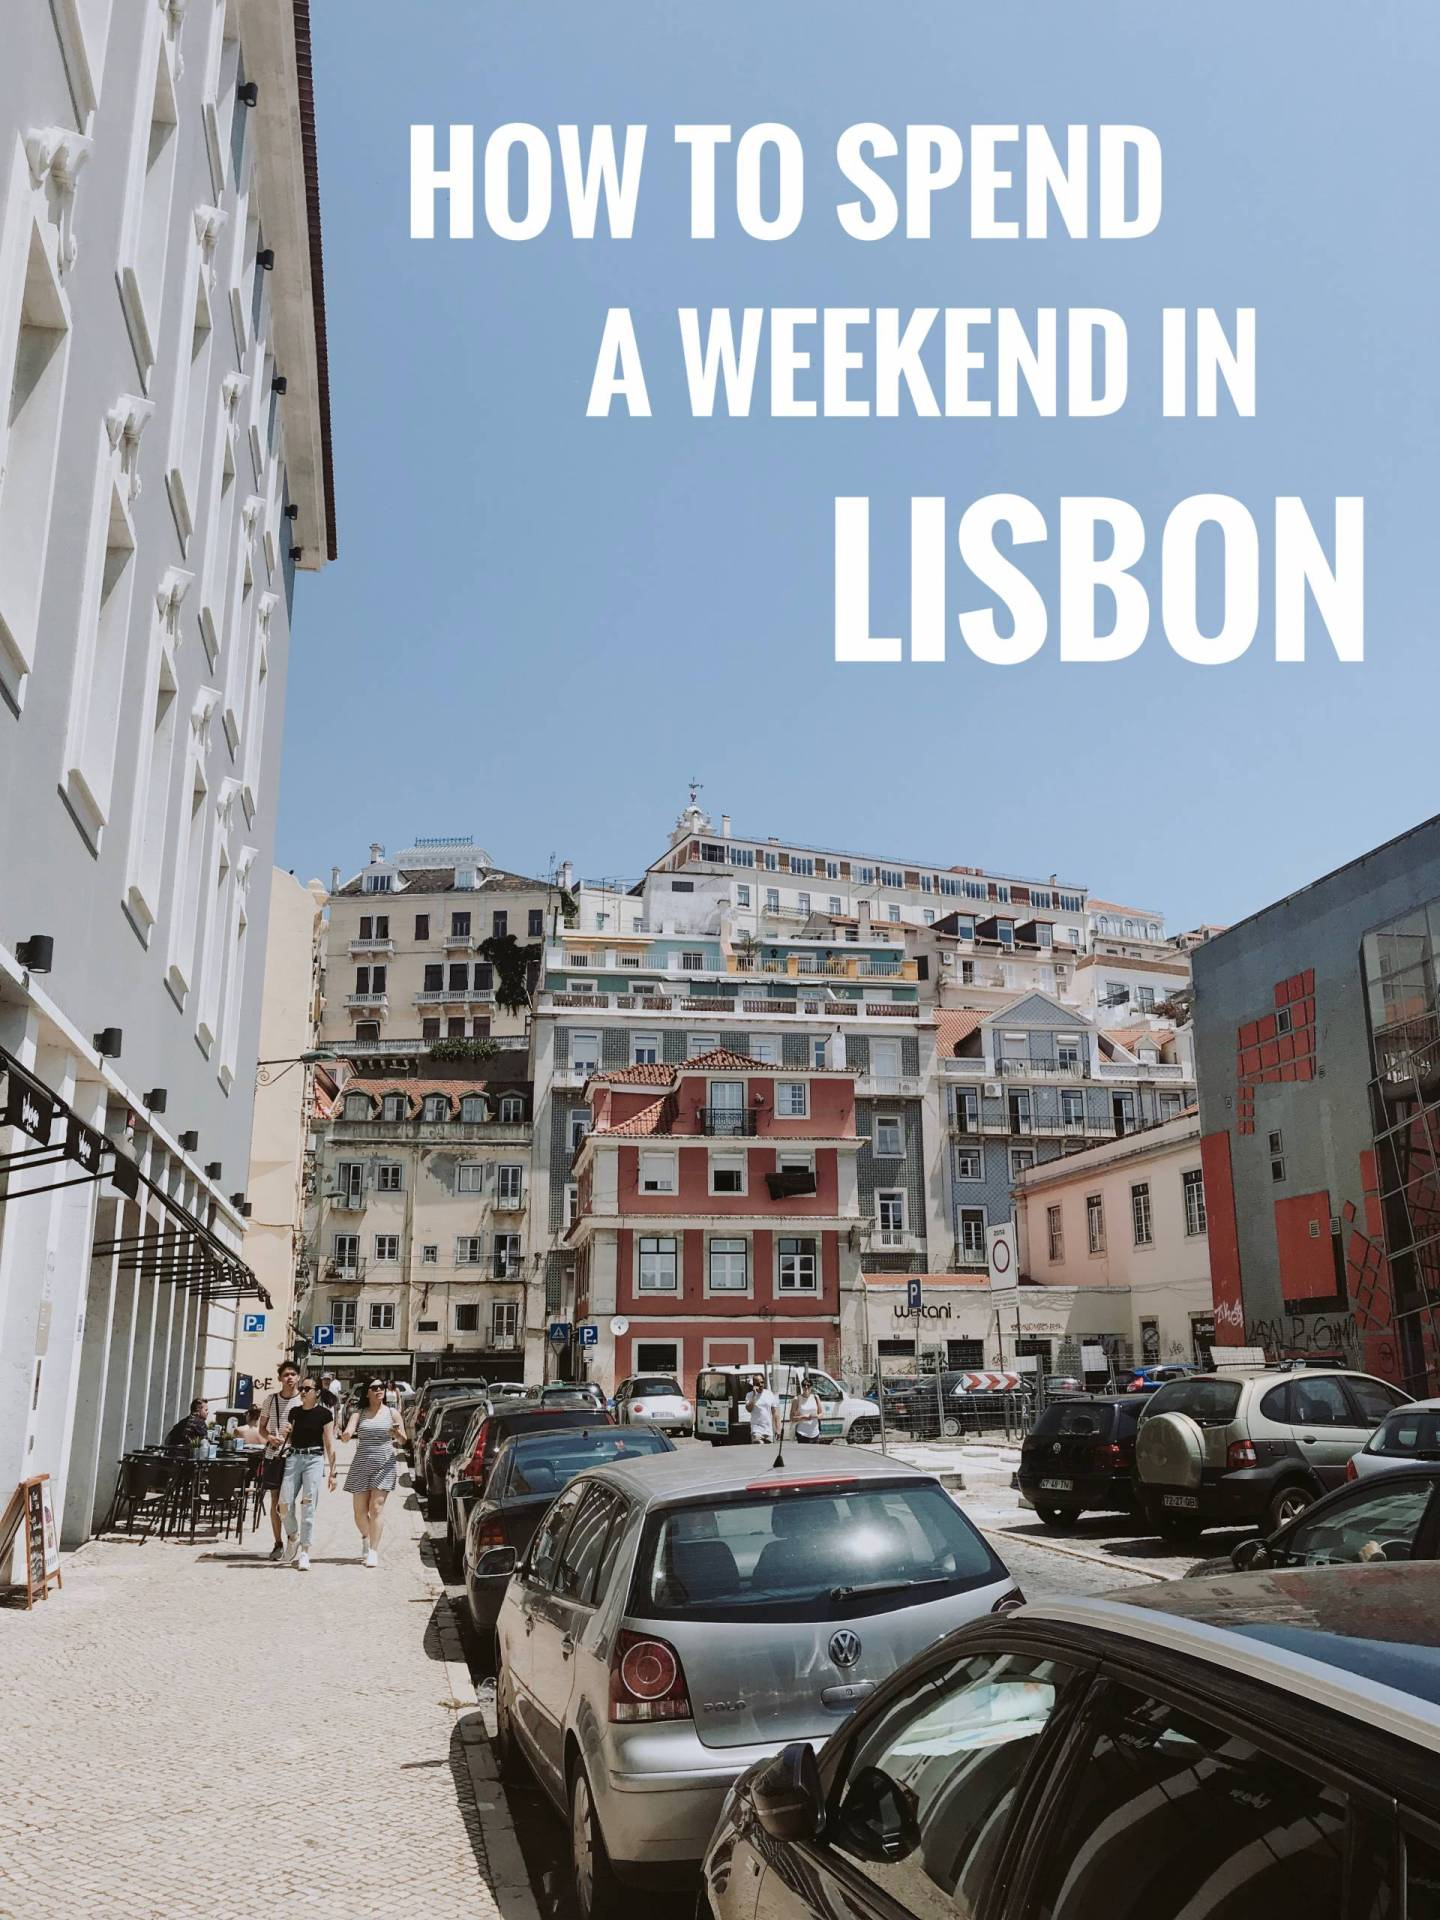 How to Spend a Weekend in Lisbon